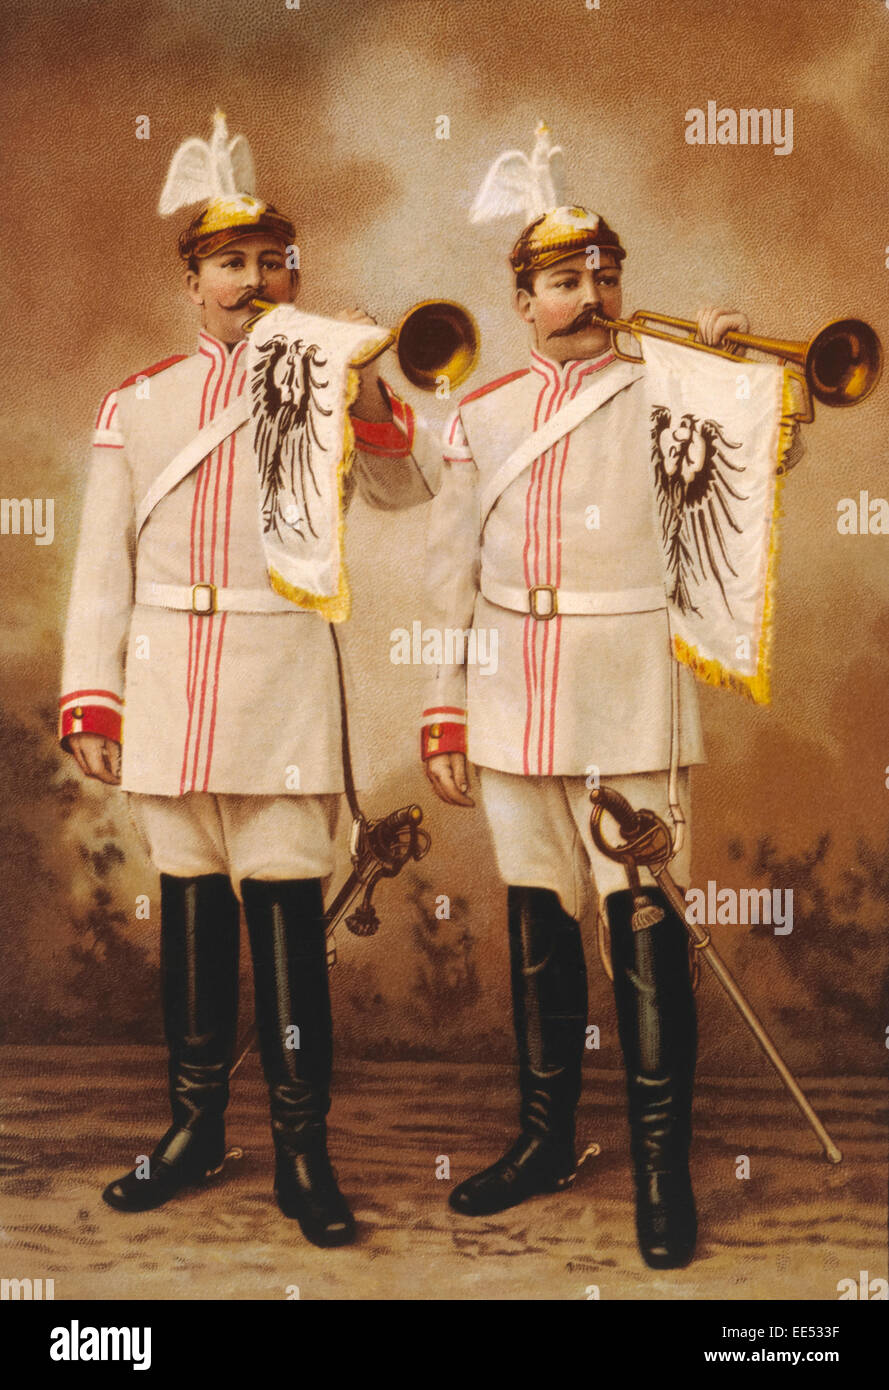 Two German Military Band Trumpeteers, circa 1912 - Stock Image